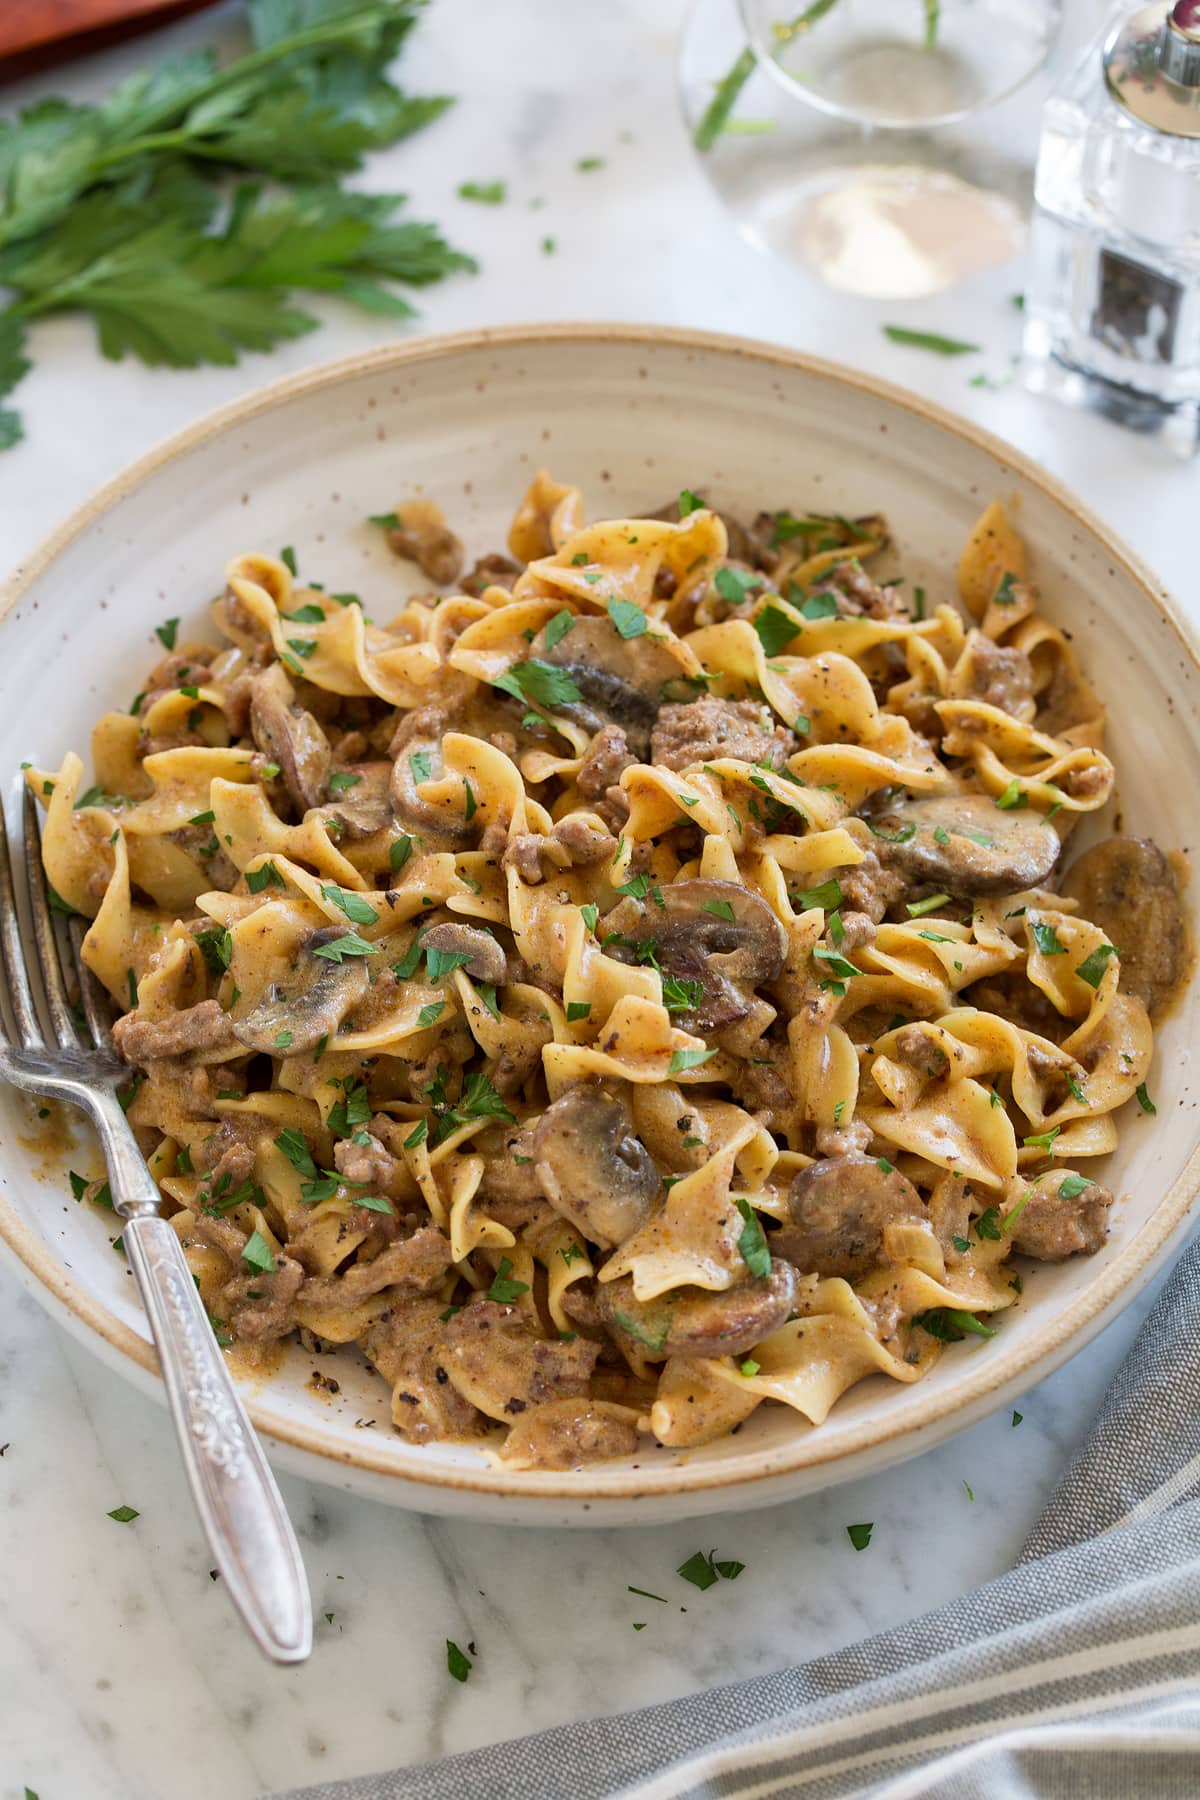 One Pot Easy Beef Stroganoff shown in a cream pasta bowl with a fork to the side. Bowl is sitting on a marble surface, parsley and a salt shaker are in the background.